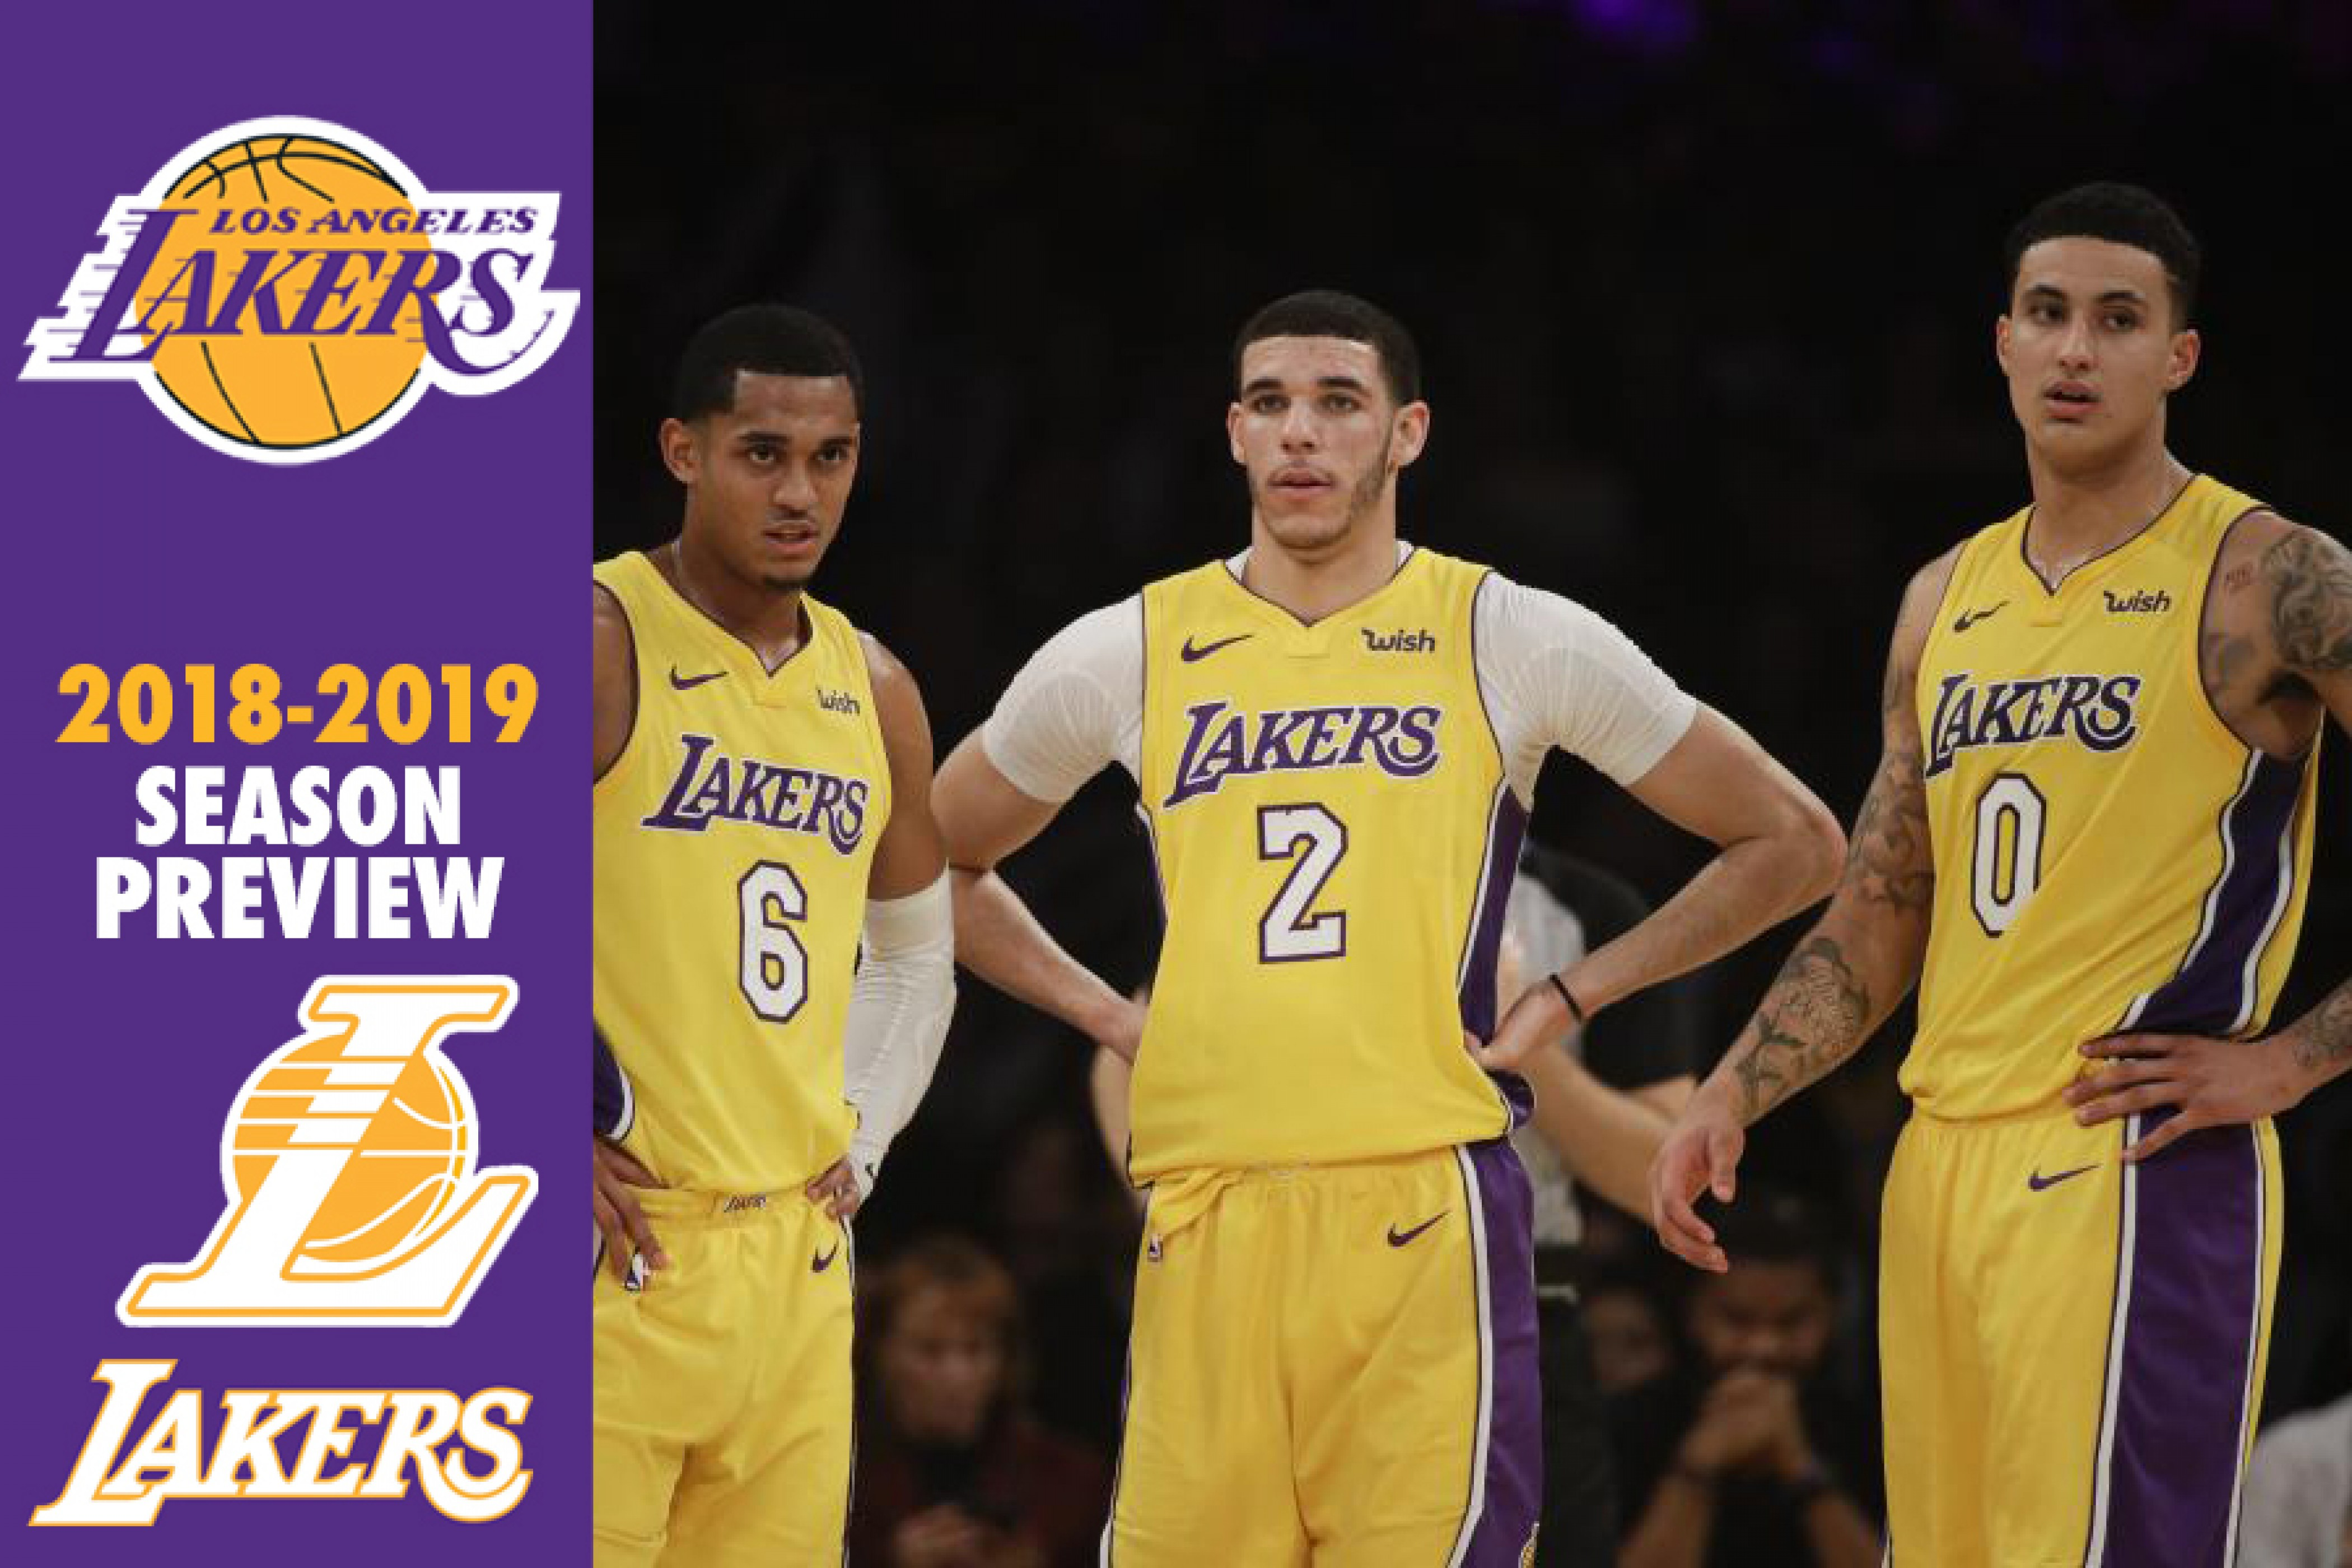 2018-2019 Preview: Los Angeles Lakers